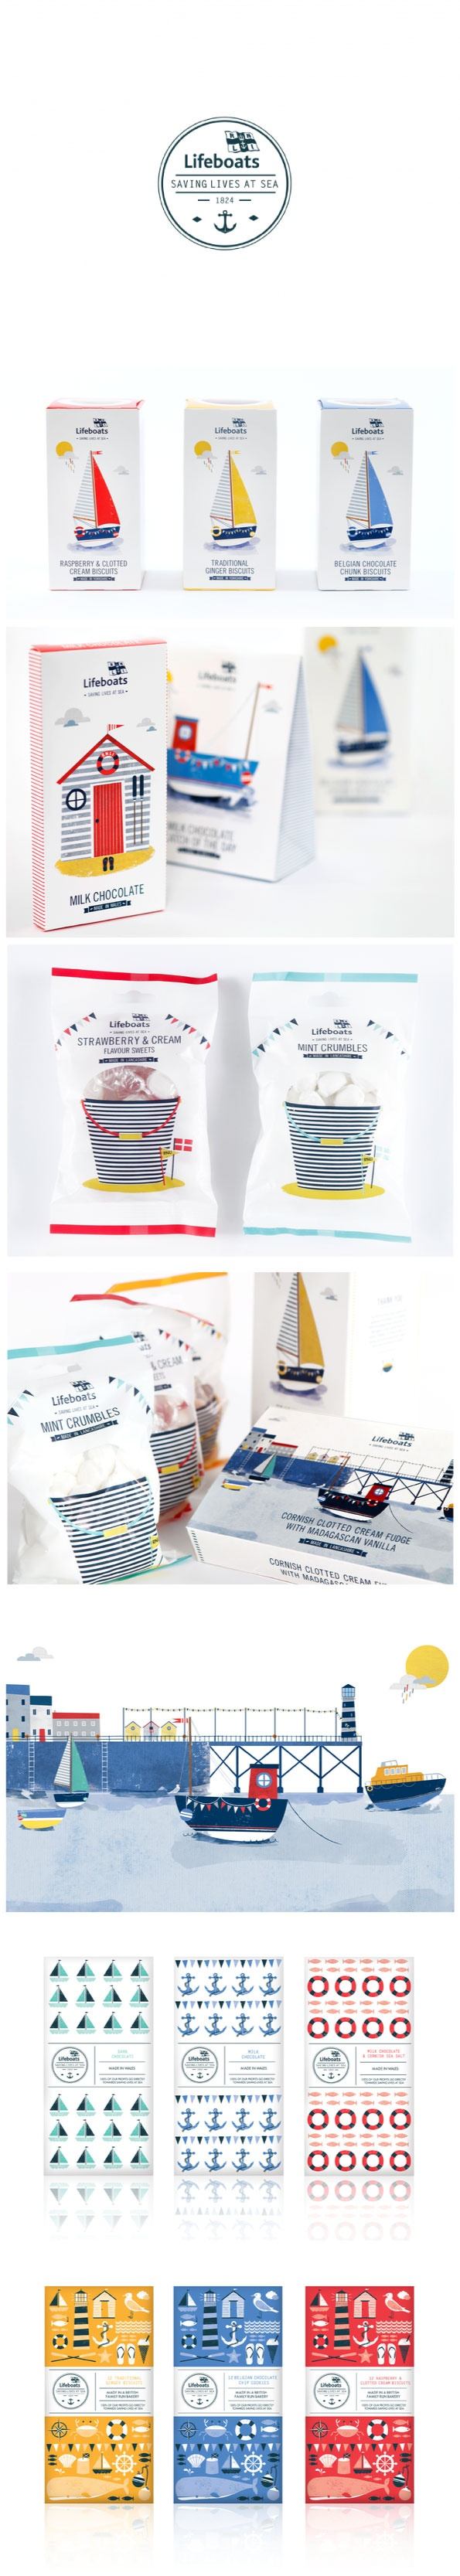 Supafrank – RNLI Nautical #confectionery #packaging #branding #marketing PD